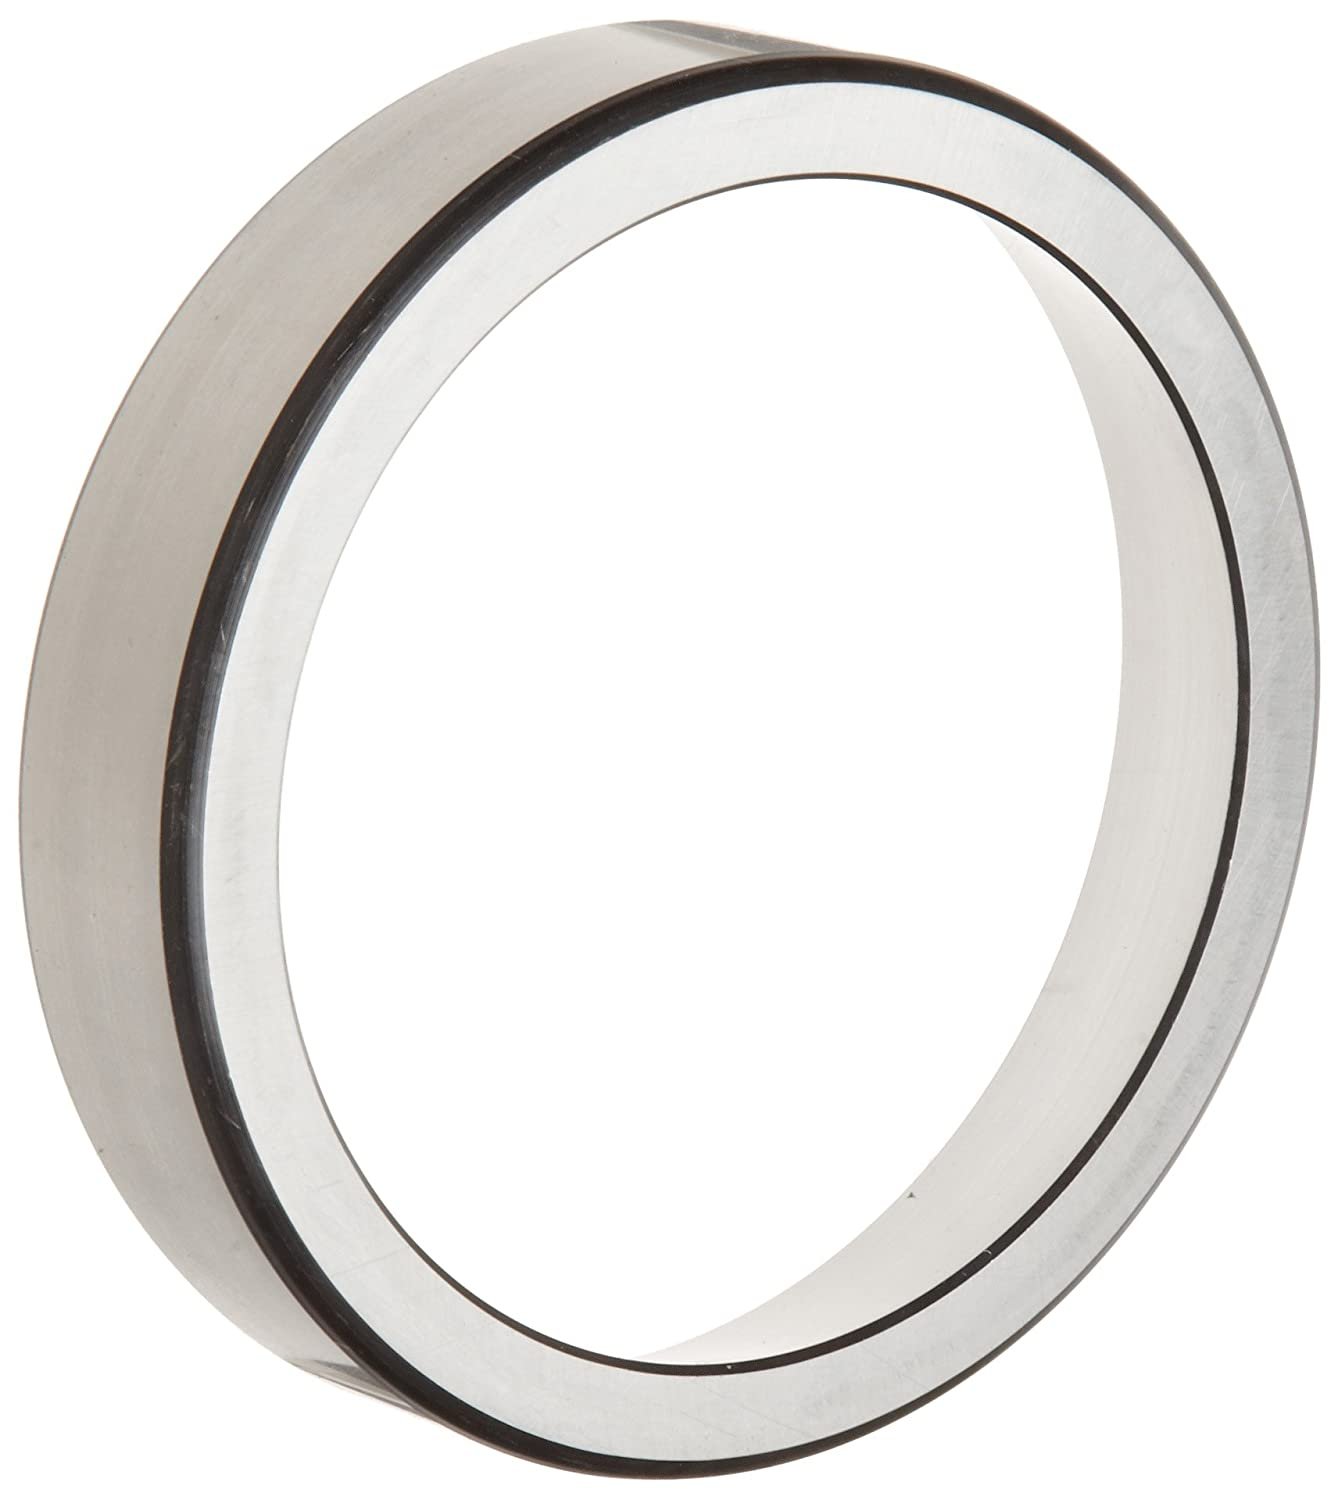 "Timken 453A Tapered Roller Bearing, Single Cup, Standard Tolerance, Straight Outside Diameter, Steel, Inch, 4.2500"" Outside Diameter, 0.8750"" Width 71BVdhXxfJL"